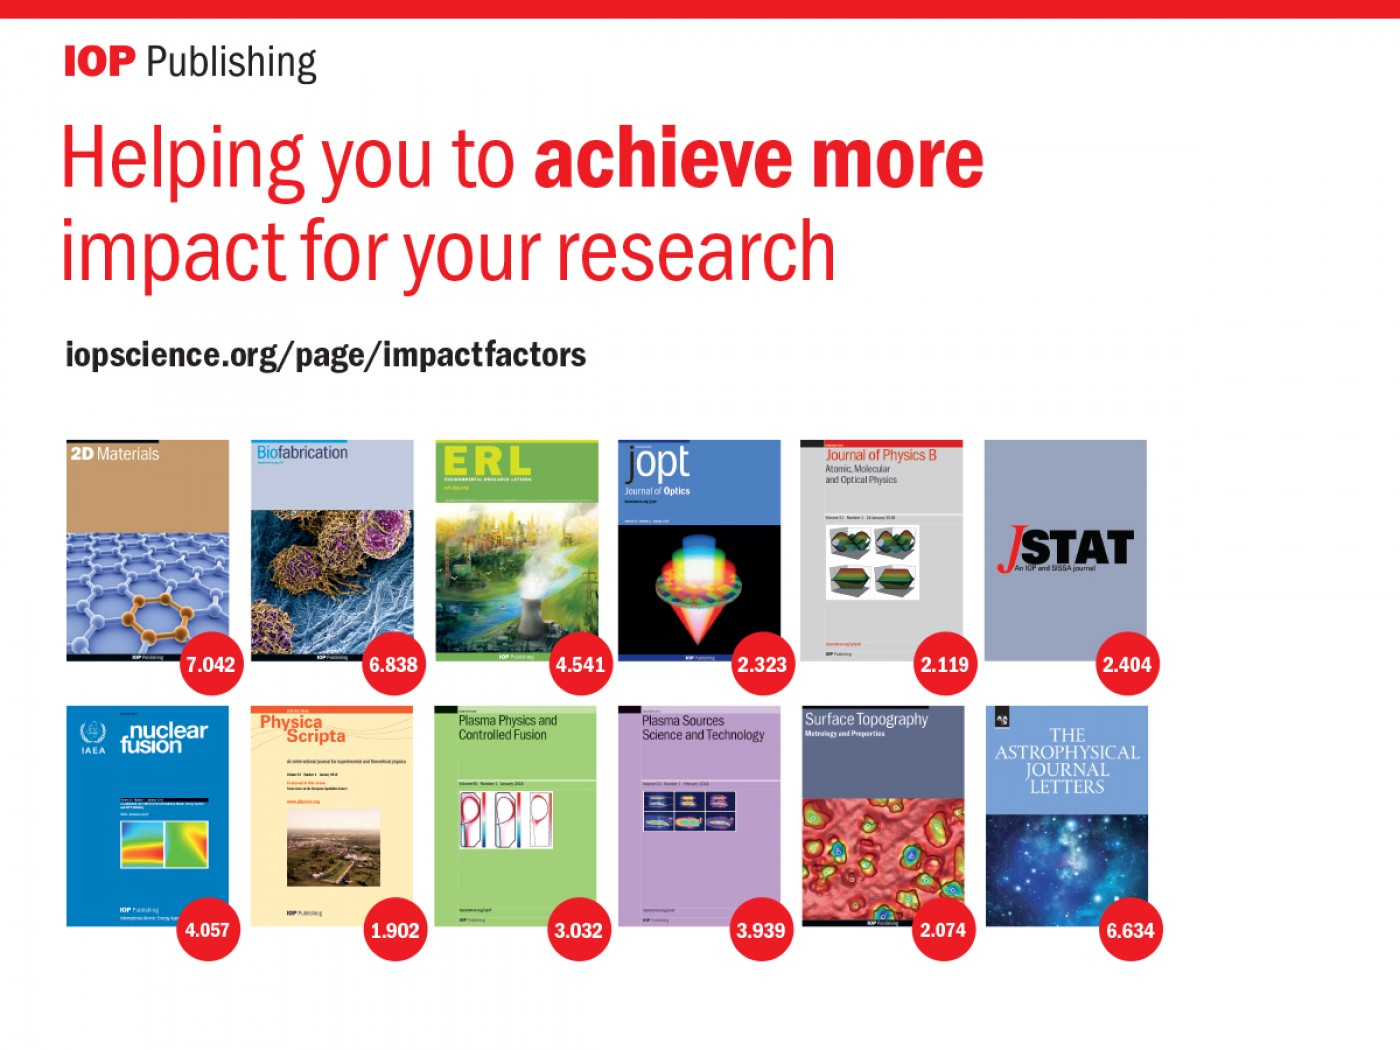 015 Best Journals To Publish Researchs Impact Factors Iop Publishing 1200x900guesttrue Stunning Research Papers In Computer Science List Of 1400